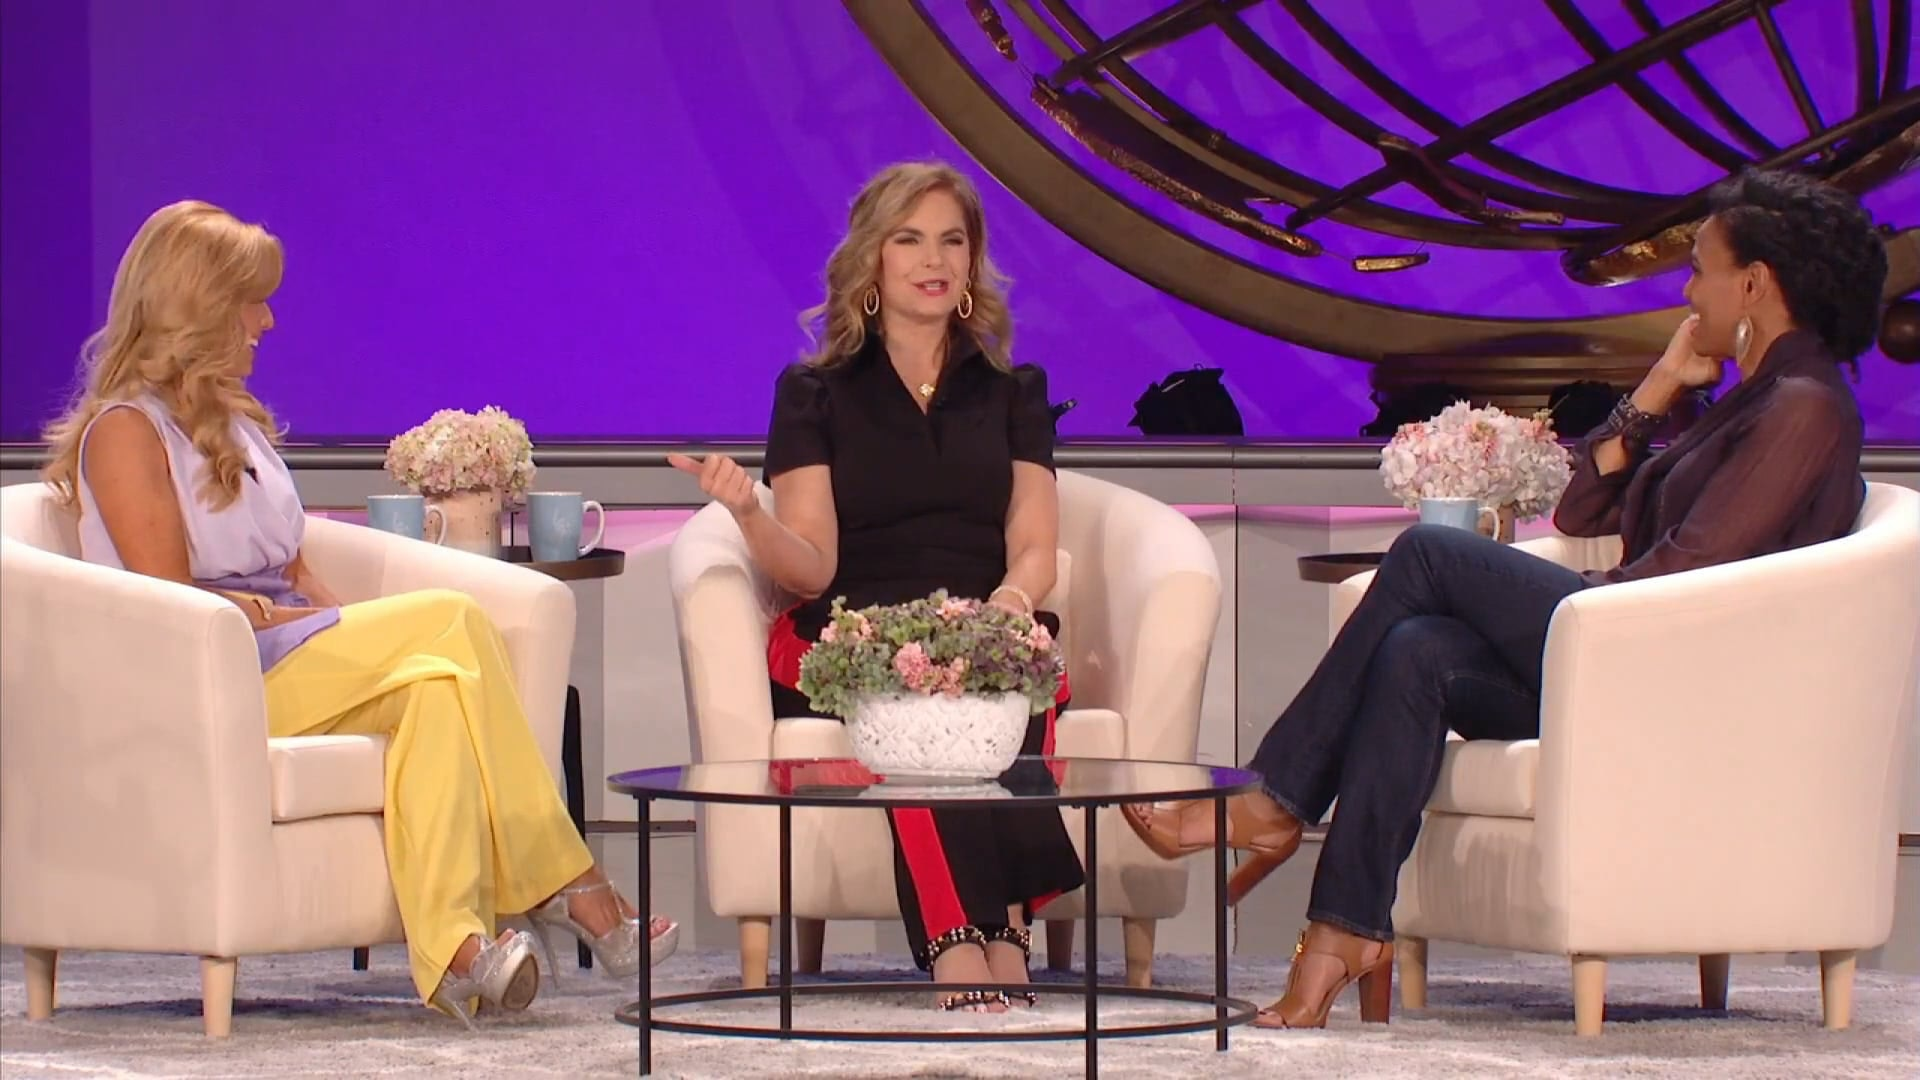 Watch Praise   Love Your Life: A Night for Women   1/29/19